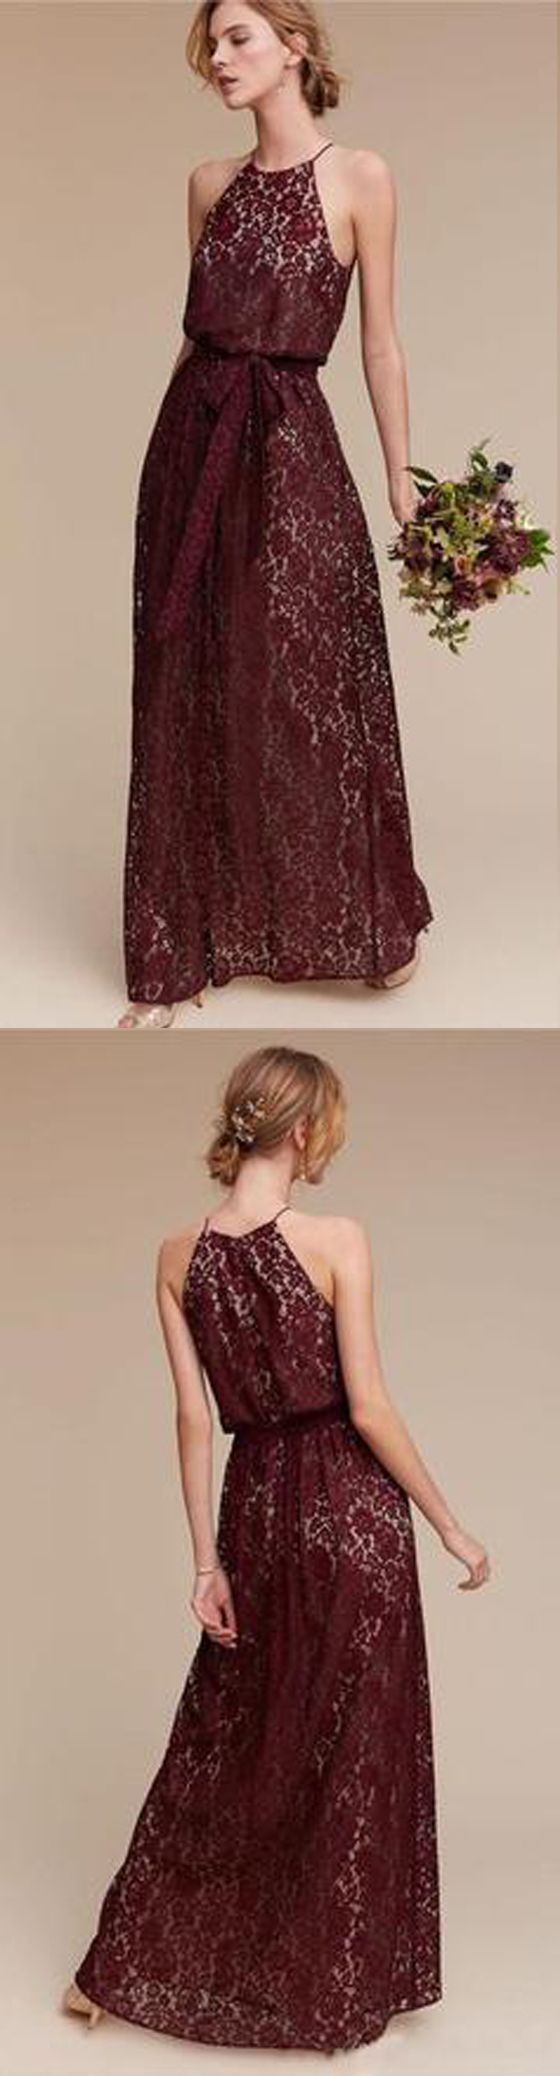 Lace Maroon Long Bridesmaid Dresses for Wedding Party, PM0812 #bridesmaidsdress #wedding #bridesmaids